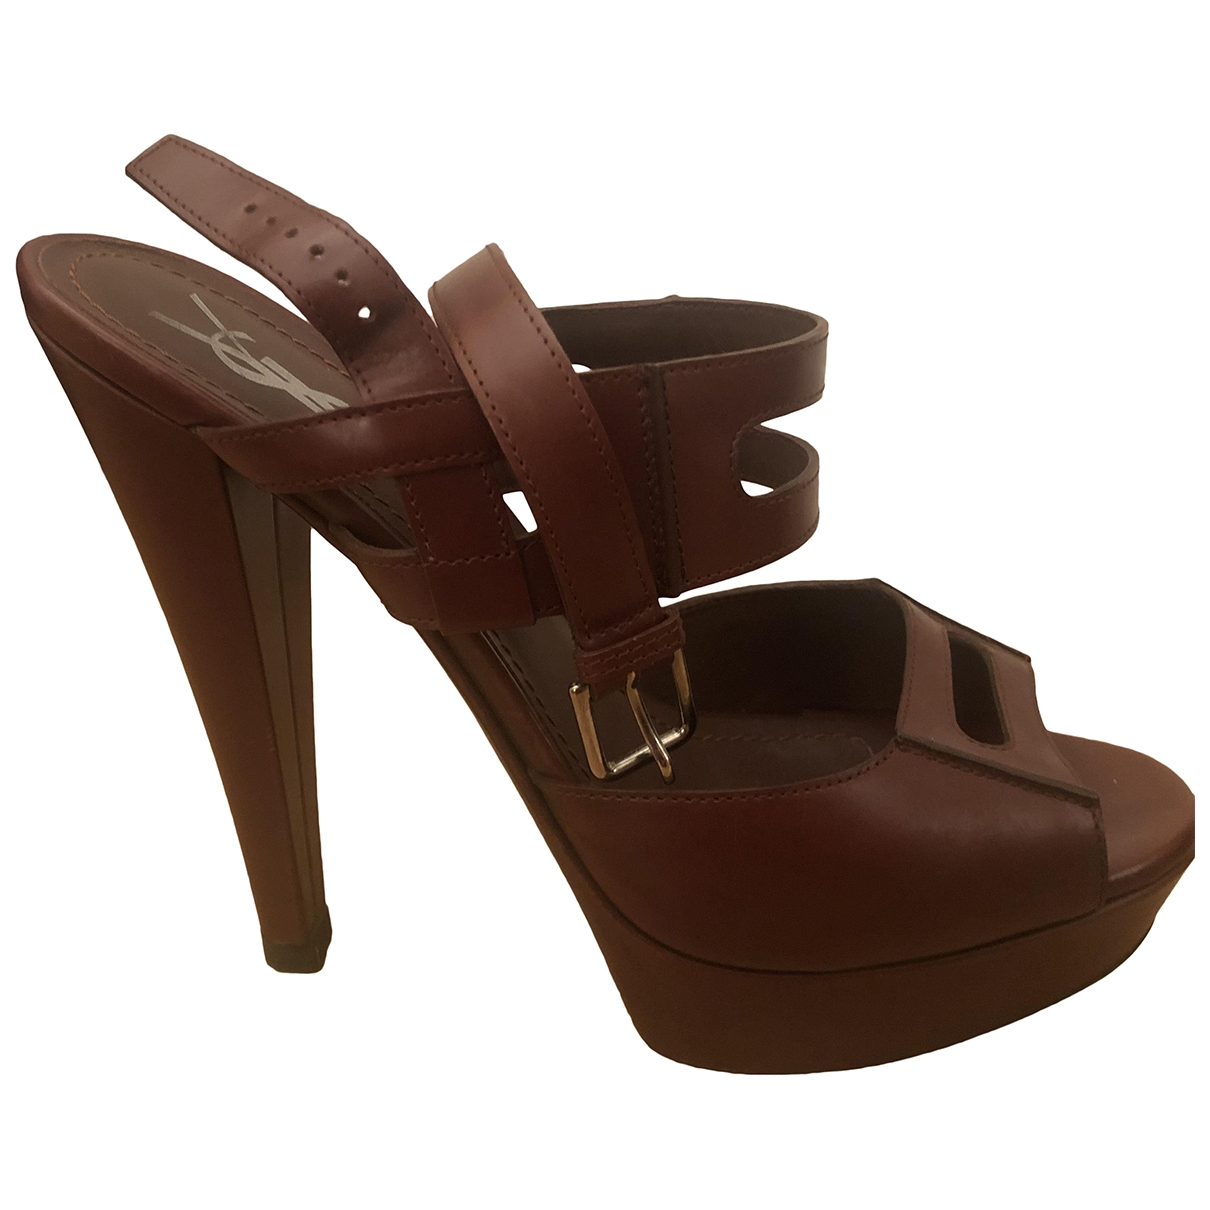 Yves Saint Laurent \N Brown Leather Sandals for Women 39 EU